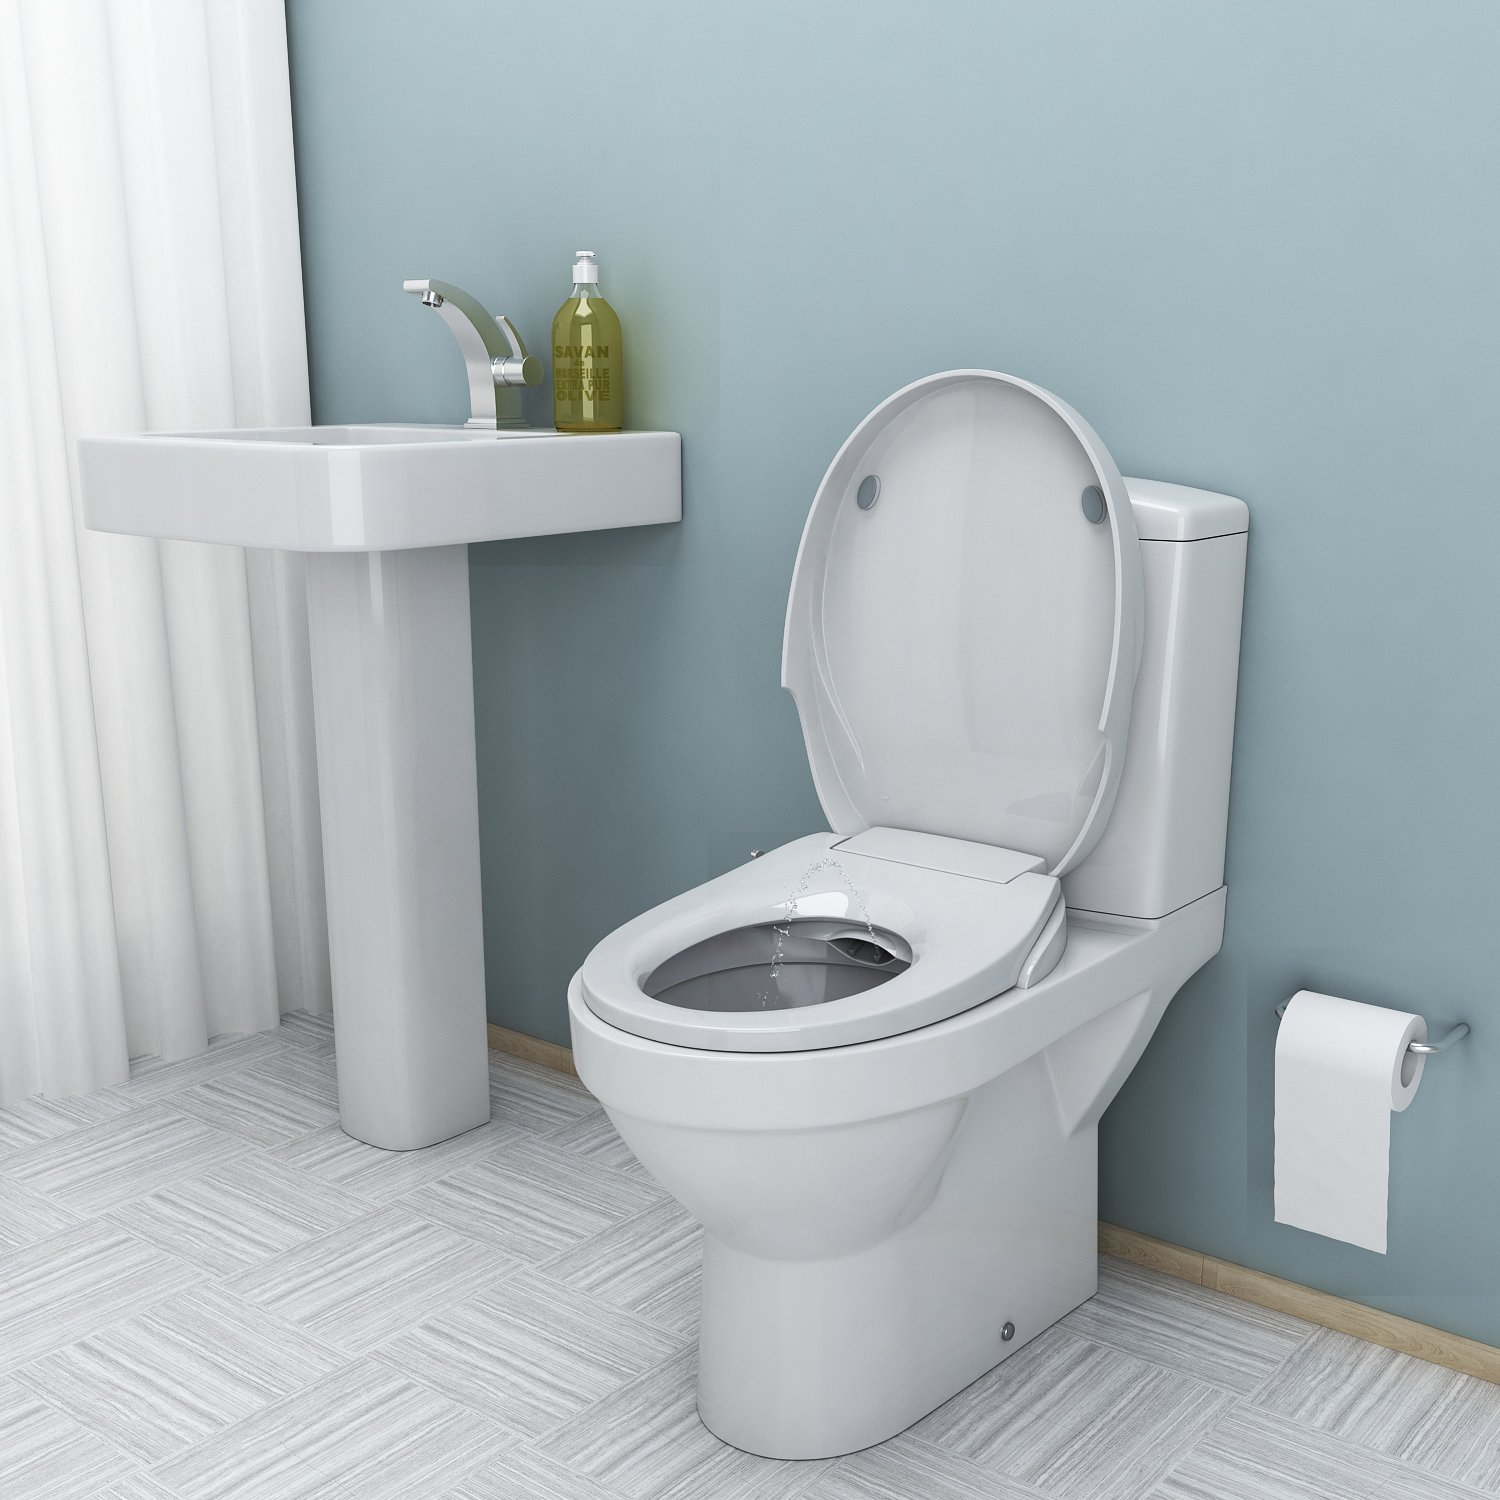 Homdox Bidet Smart Toilet Seat in Round Self Cleaning - Dual Nozzle ...